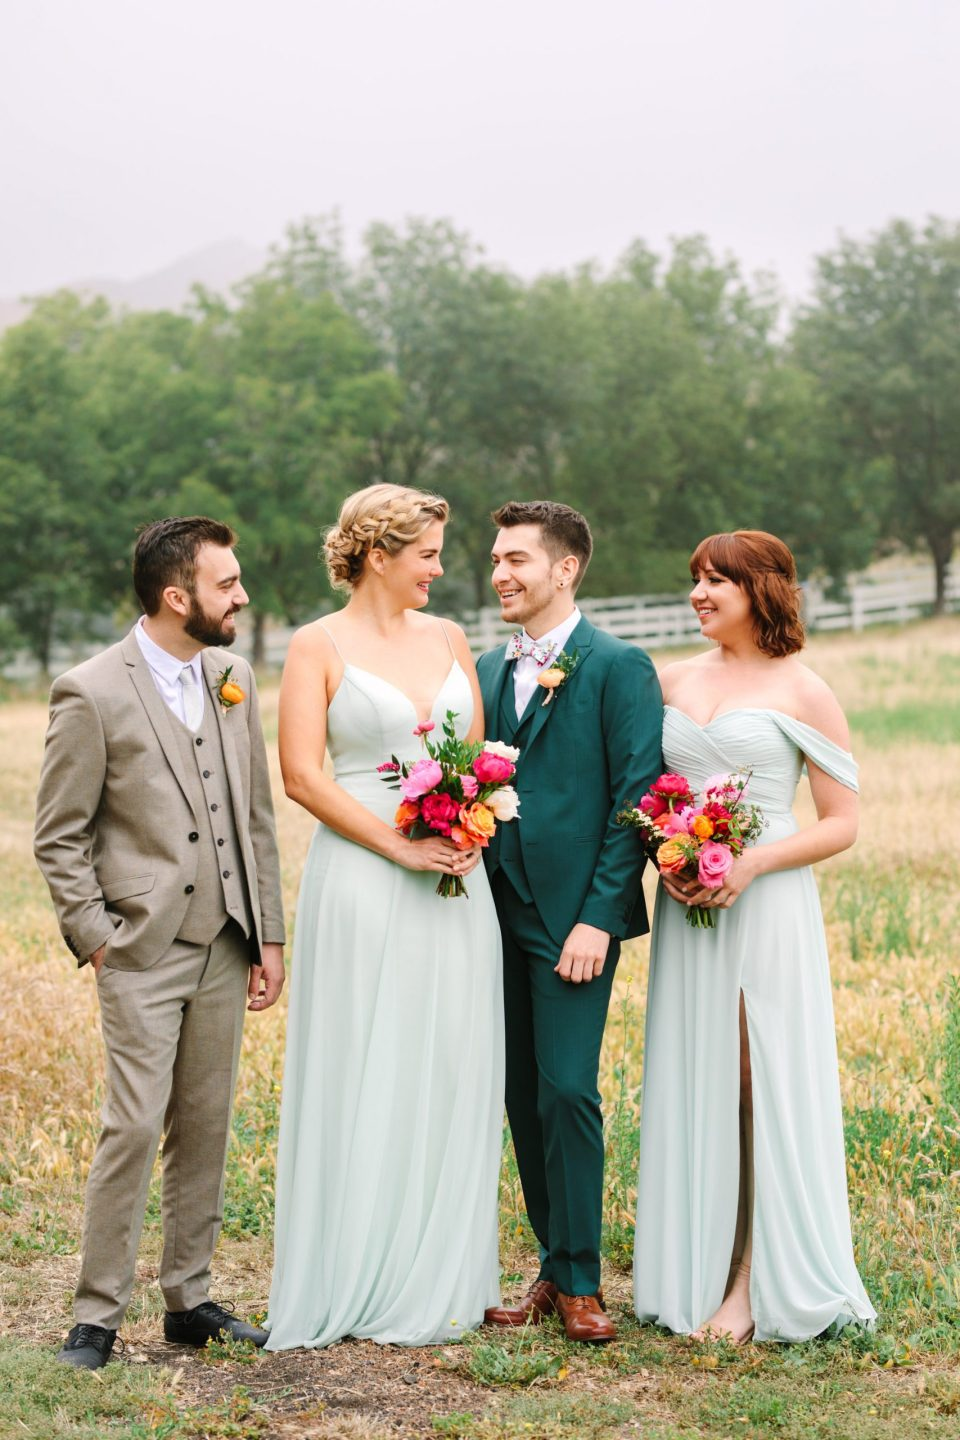 Mint green wedding party by Mary Costa Photography